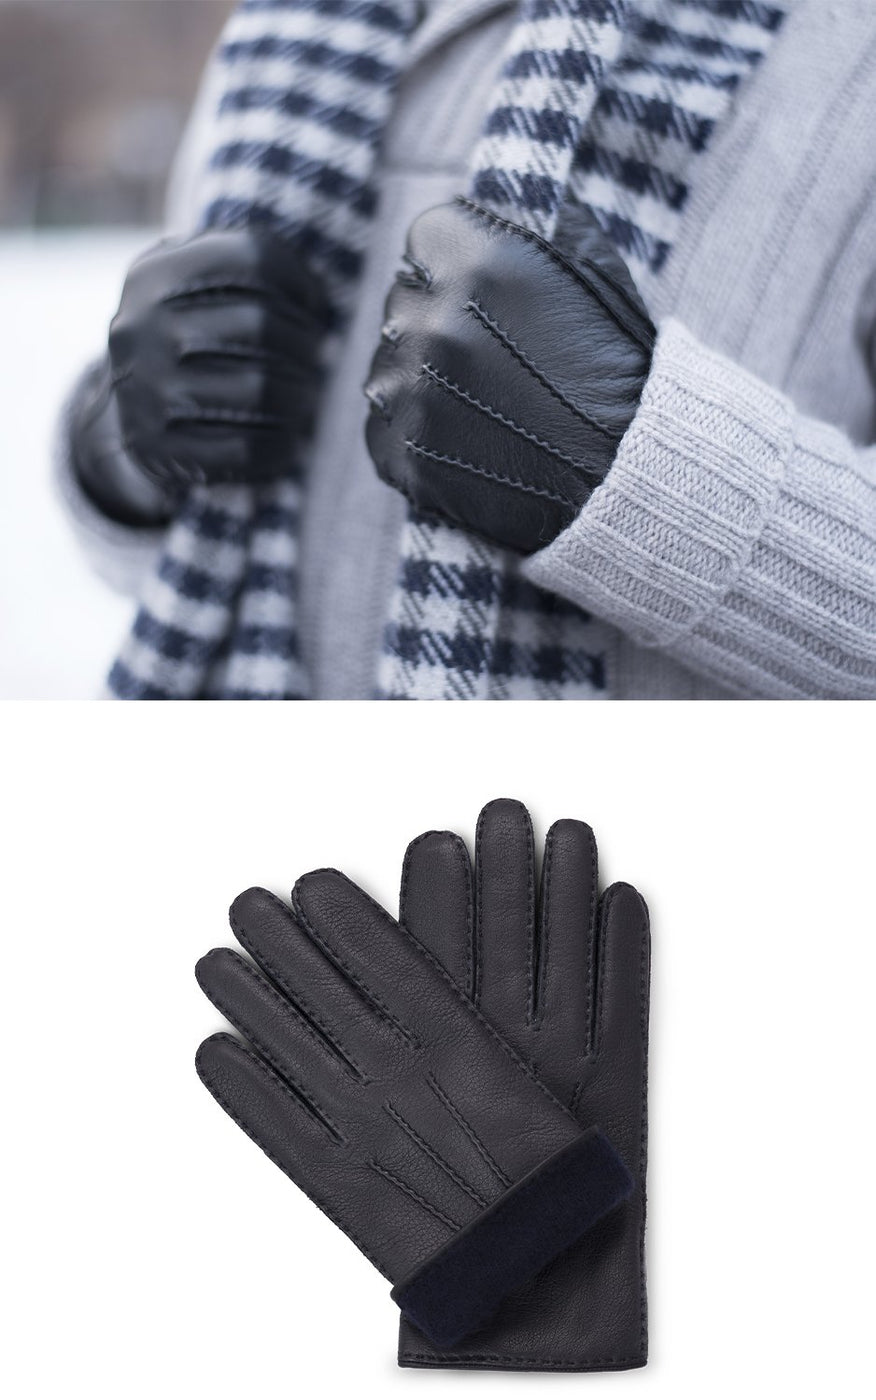 Man in grey sweater wears checked scarf and black moose leather gloves